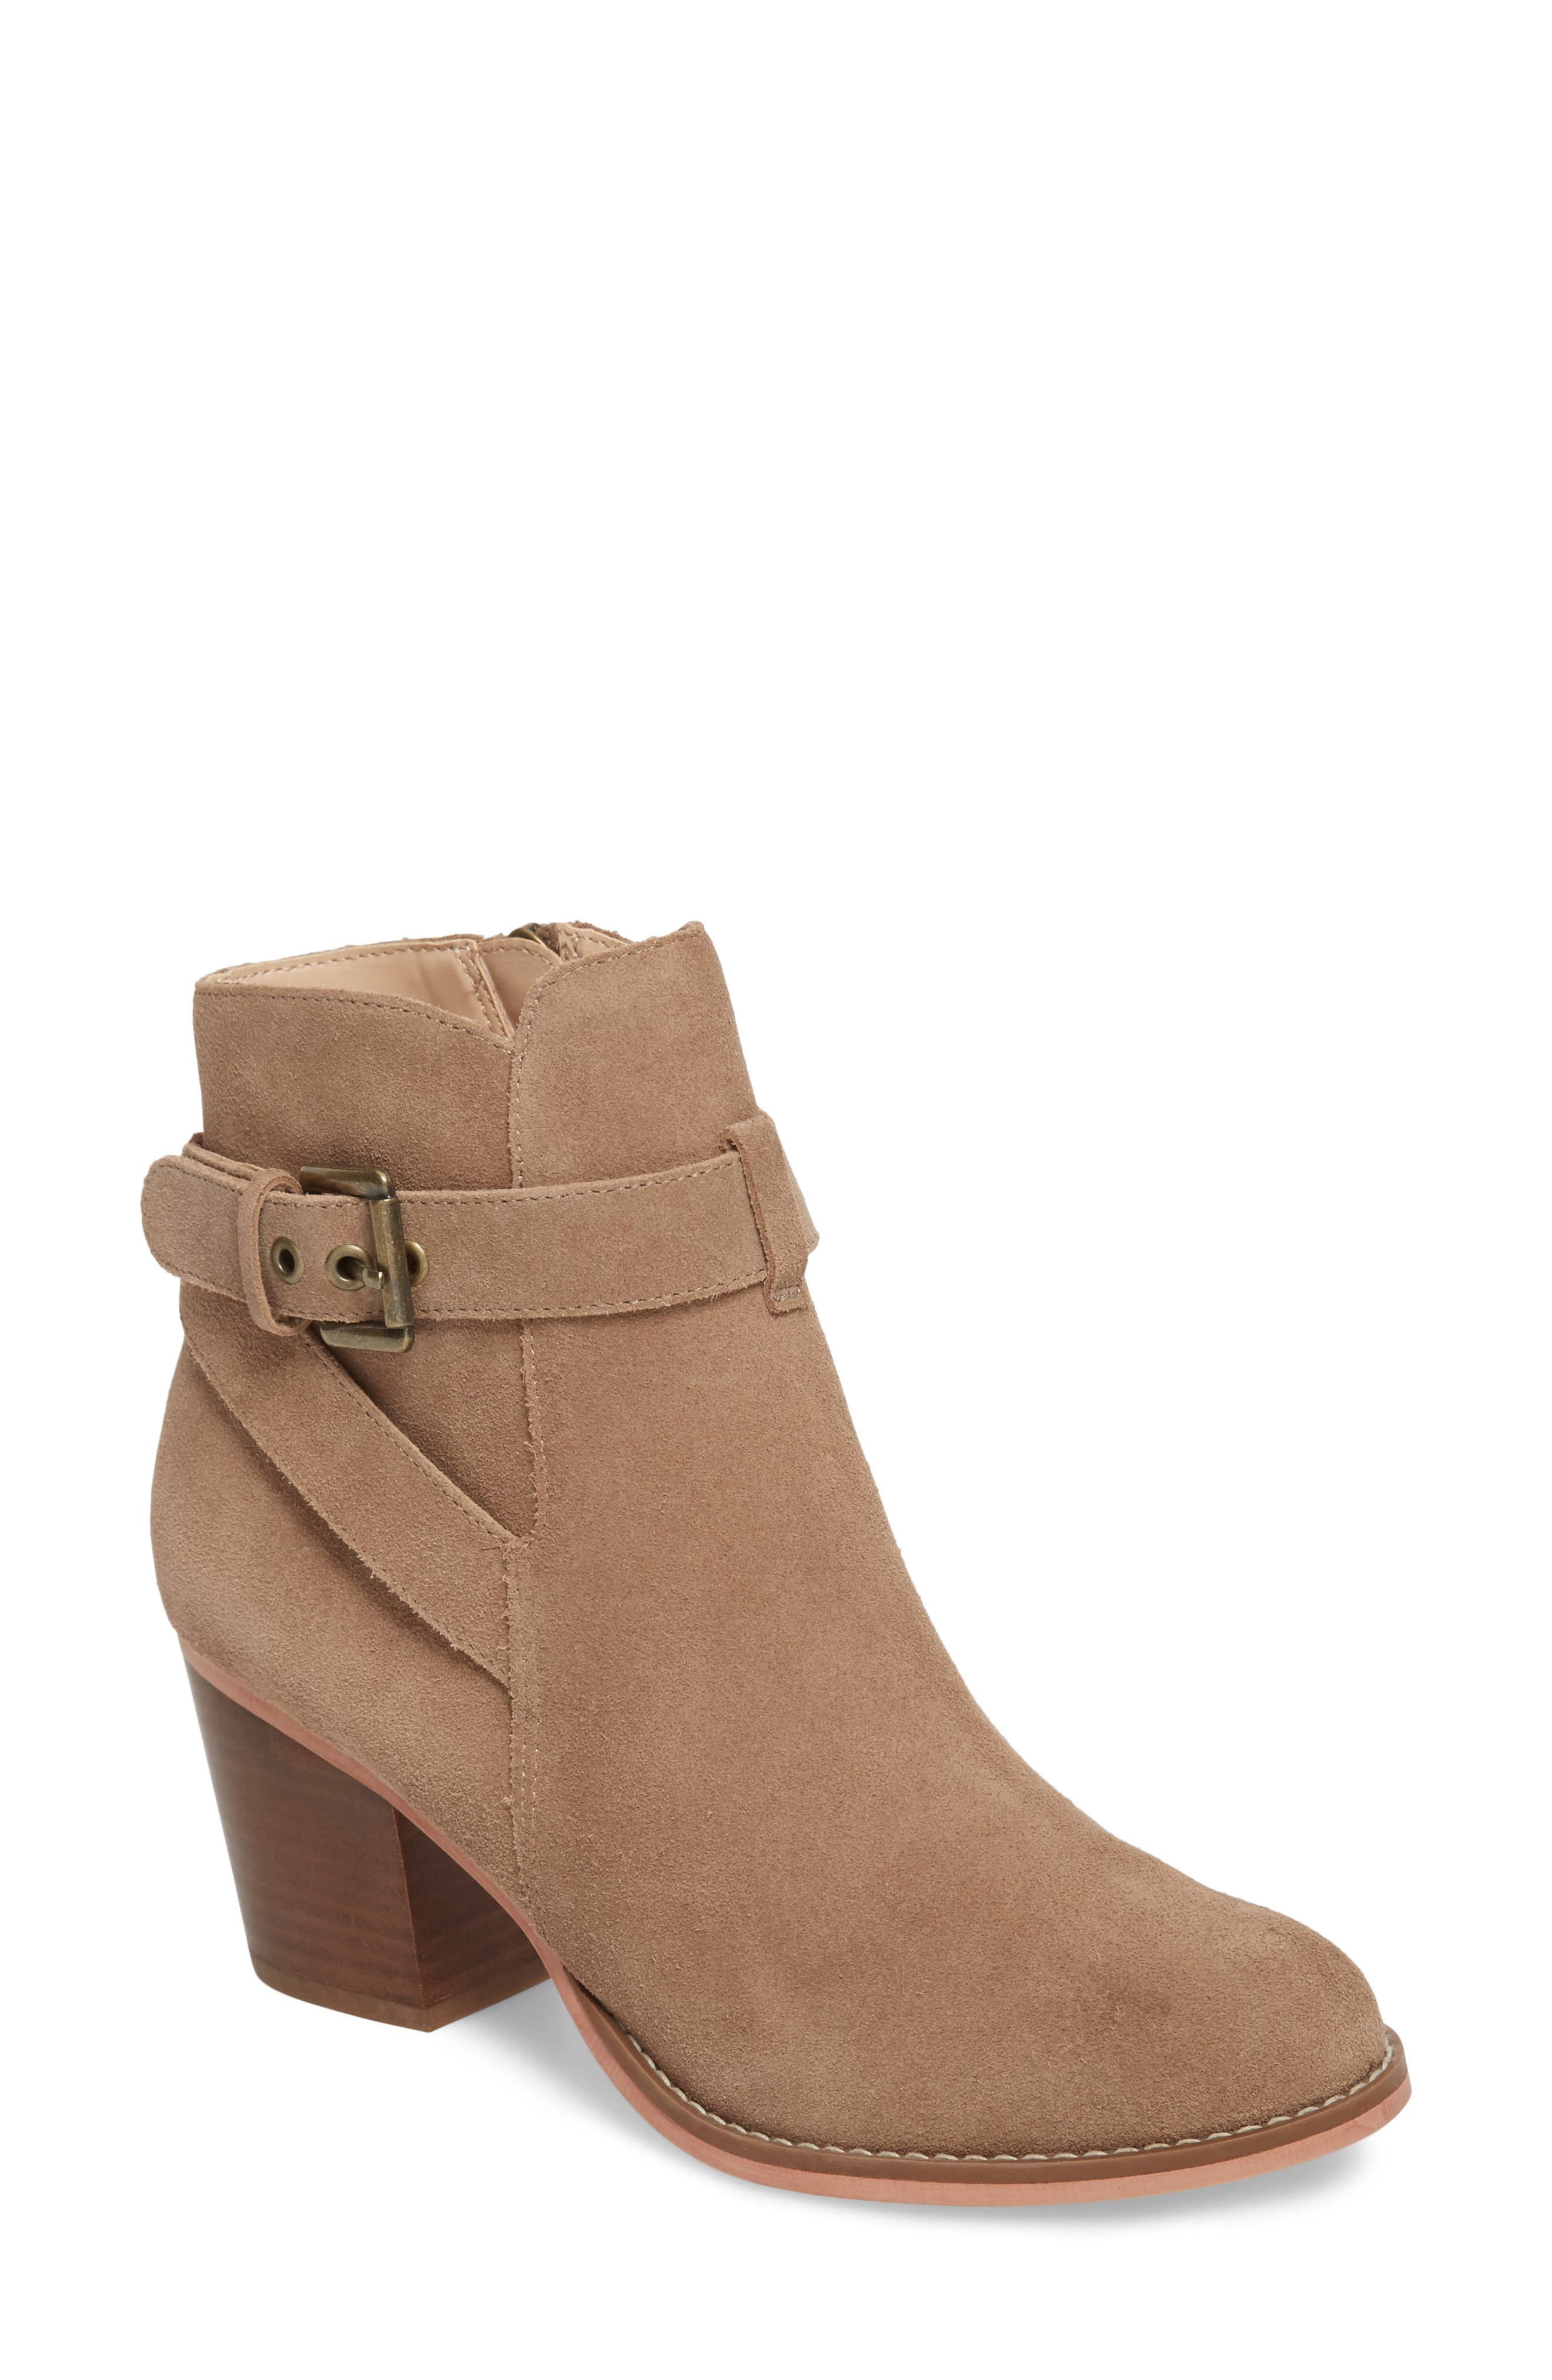 Paislee Buckle Strap Bootie,                         Main,                         color, 200